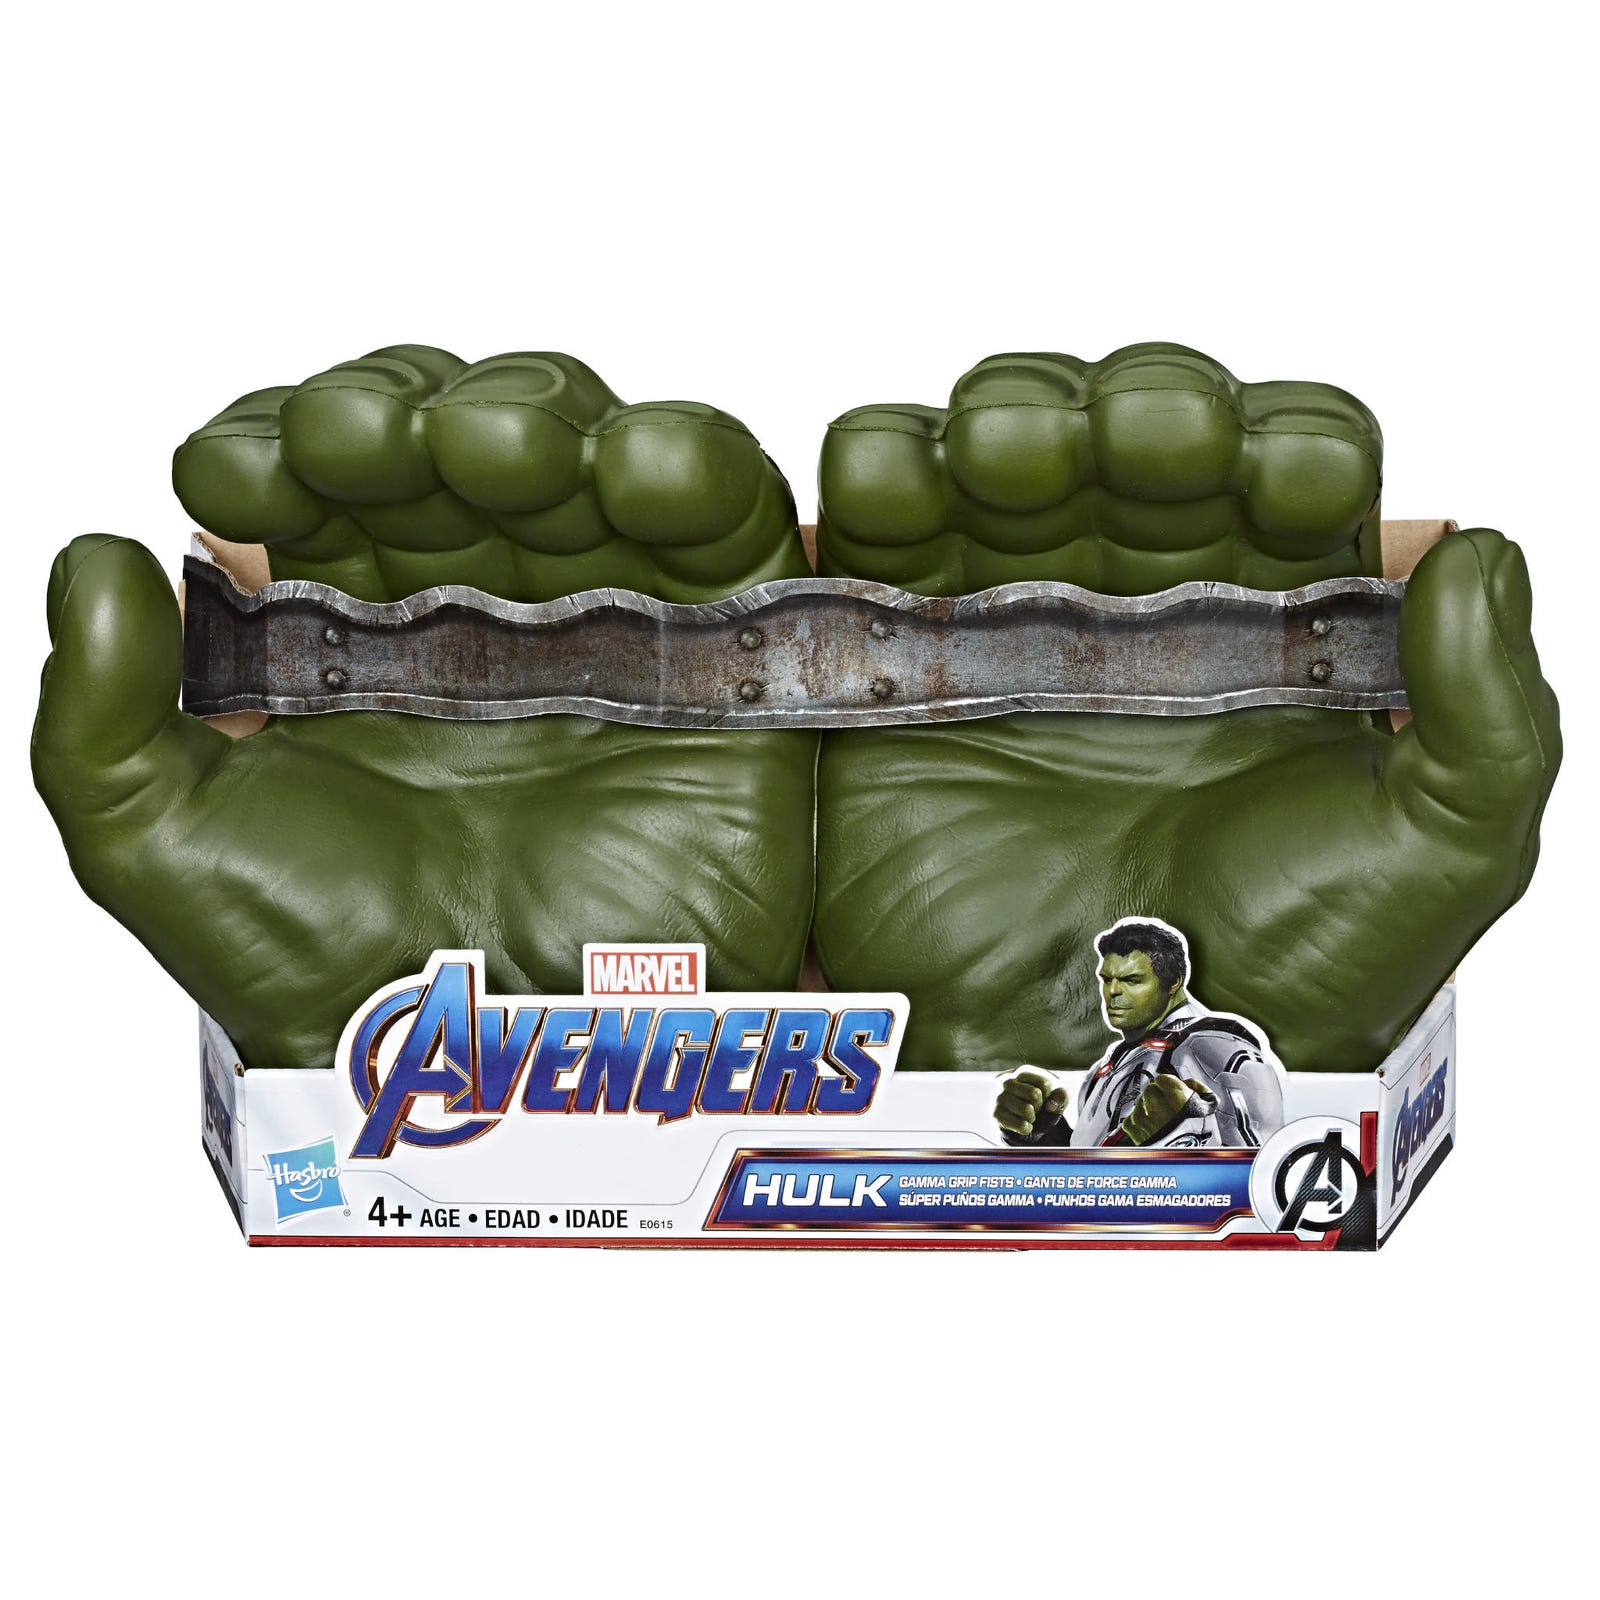 Show me an Avengers roleplay toyline without giant Hulk hands, and I will show you a liar.